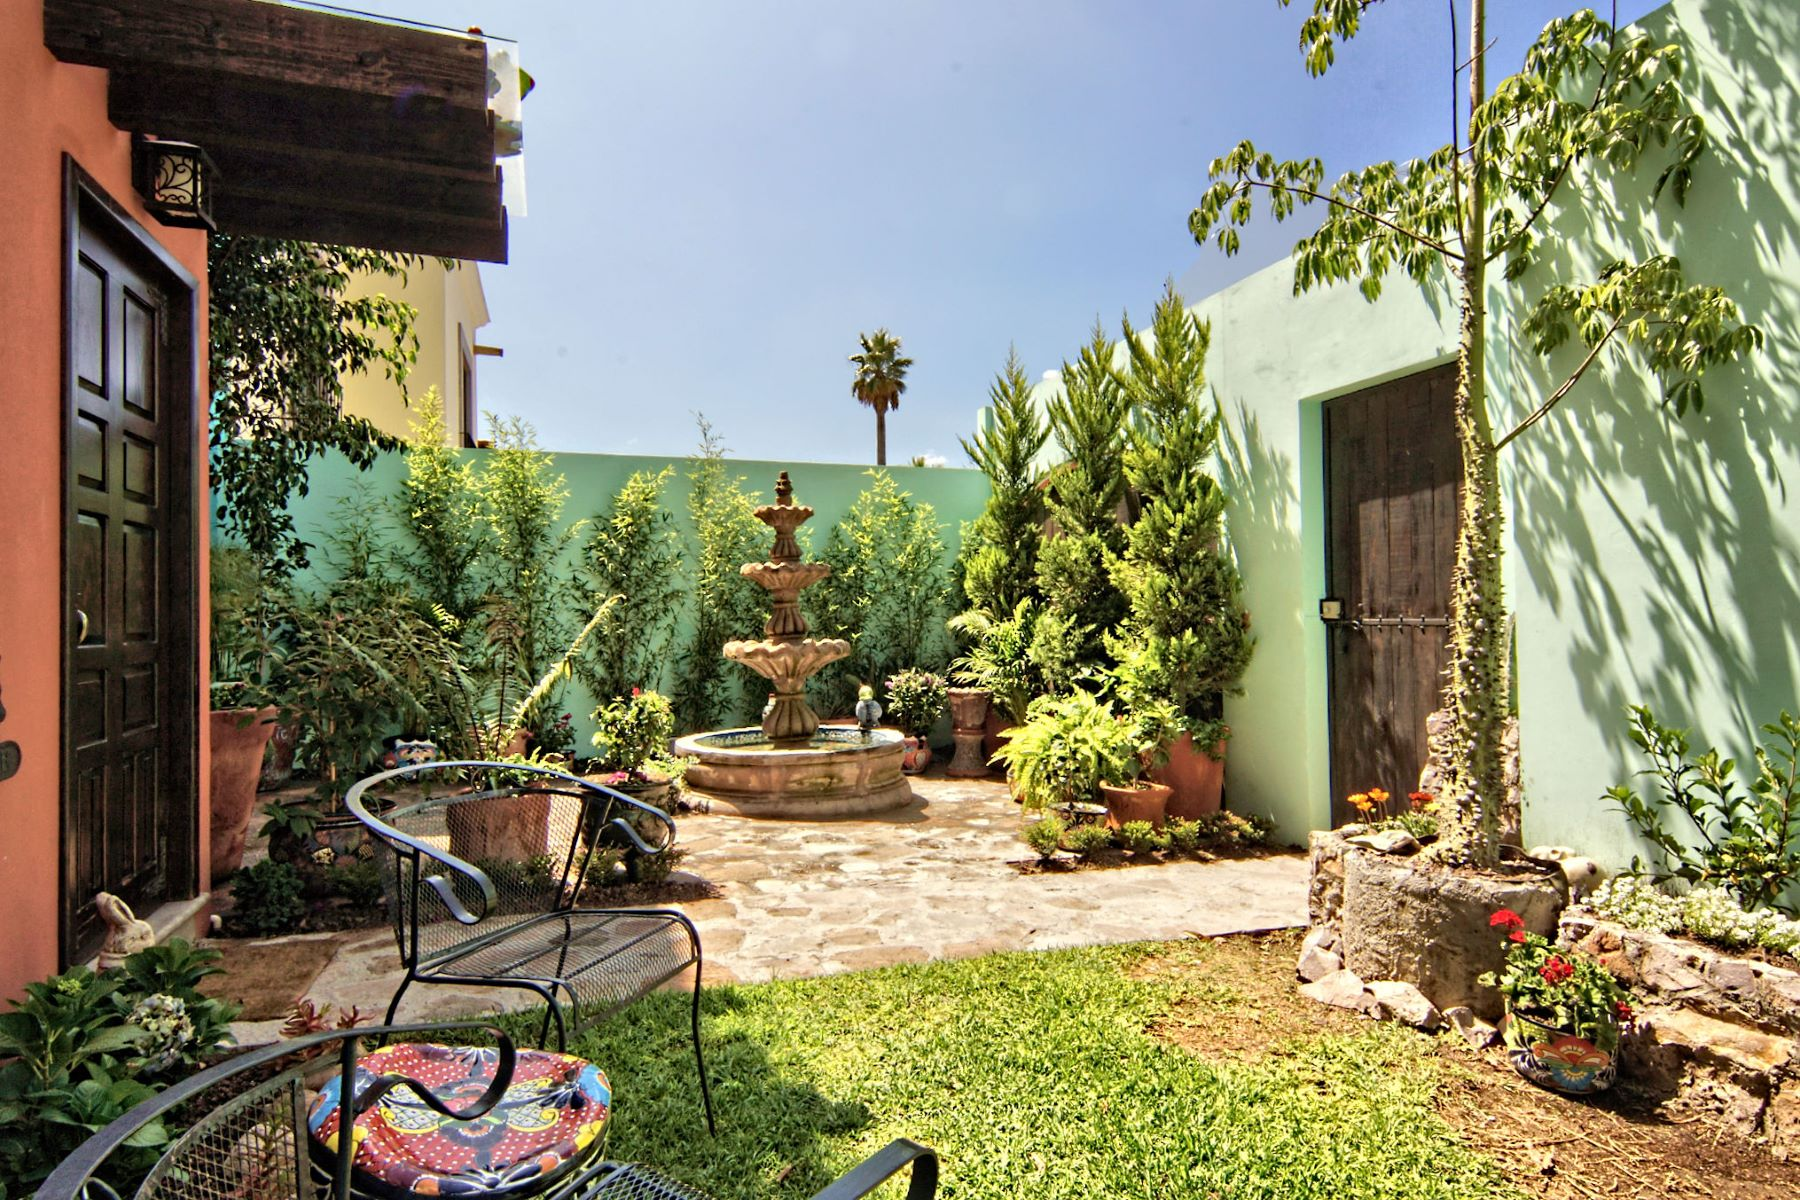 Single Family Home for Sale at PASEO REAL Paseo Real 14 San Miguel De Allende, Guanajuato, 37765 Mexico